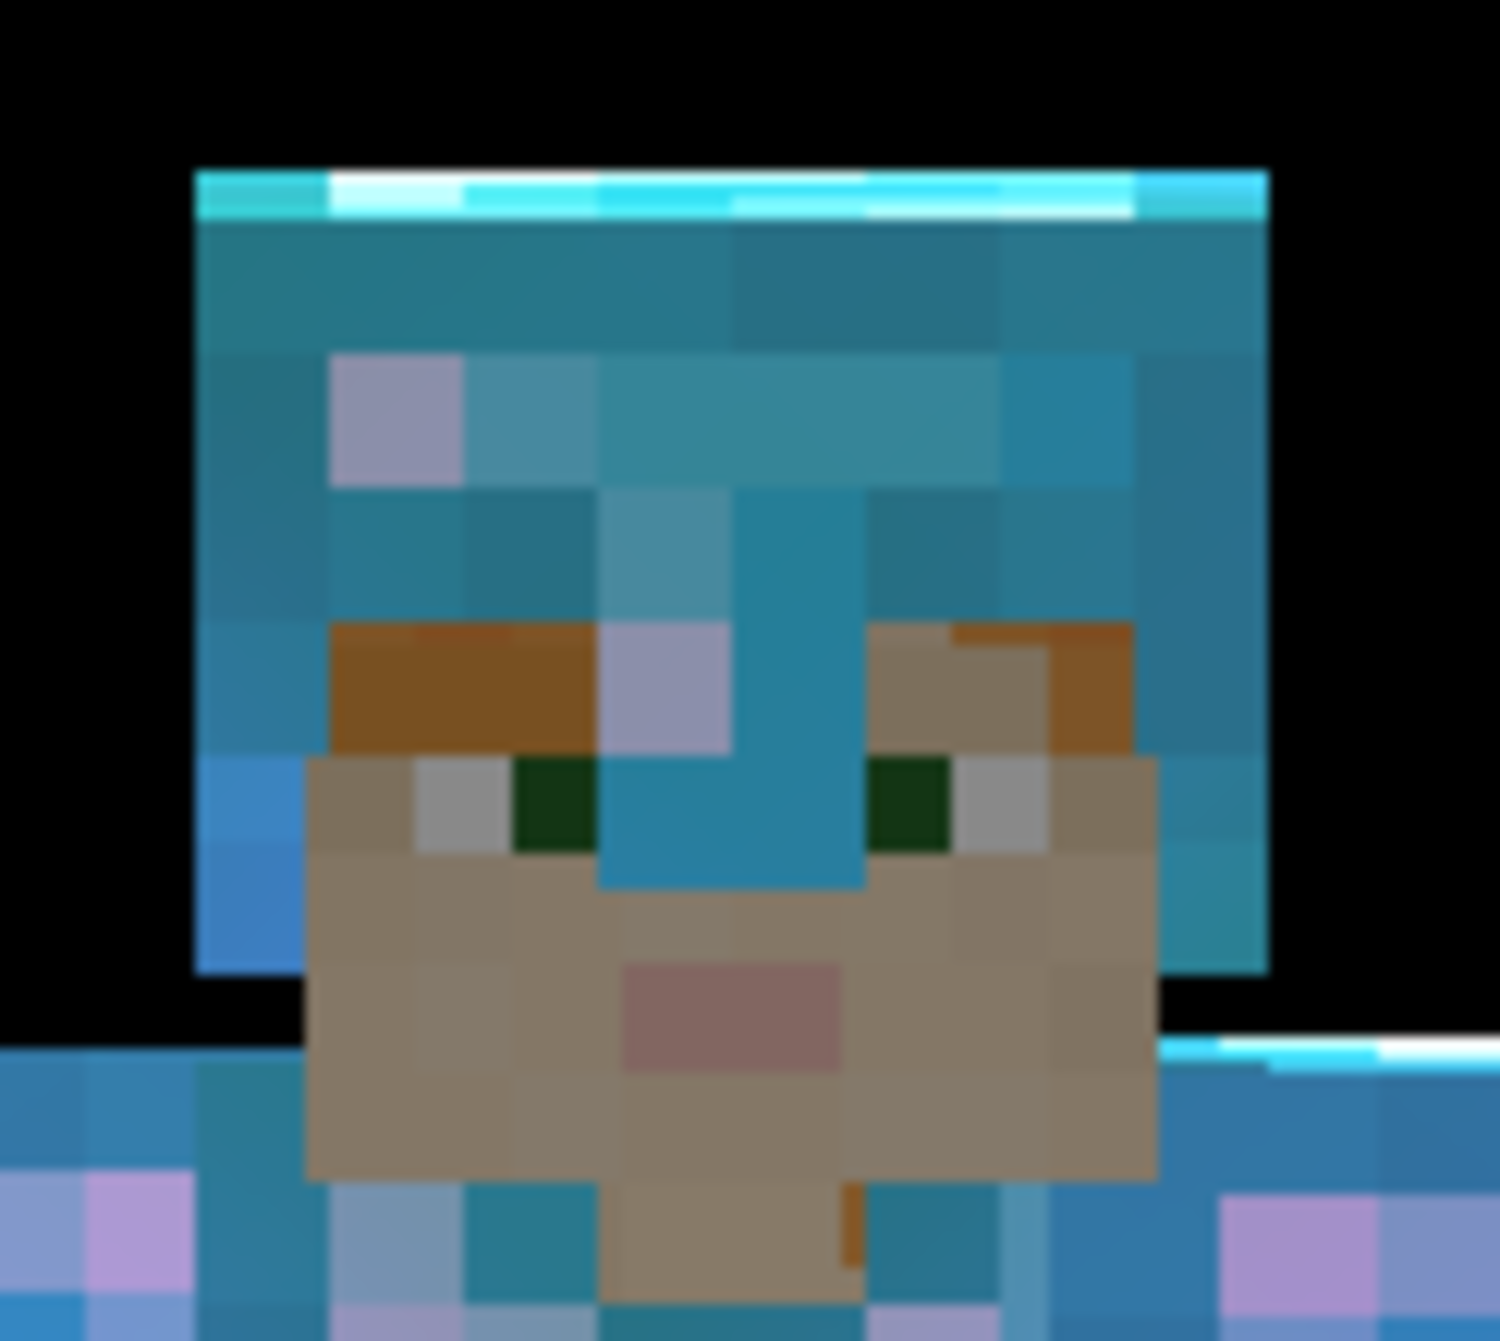 Calibur Minecraft's avatar